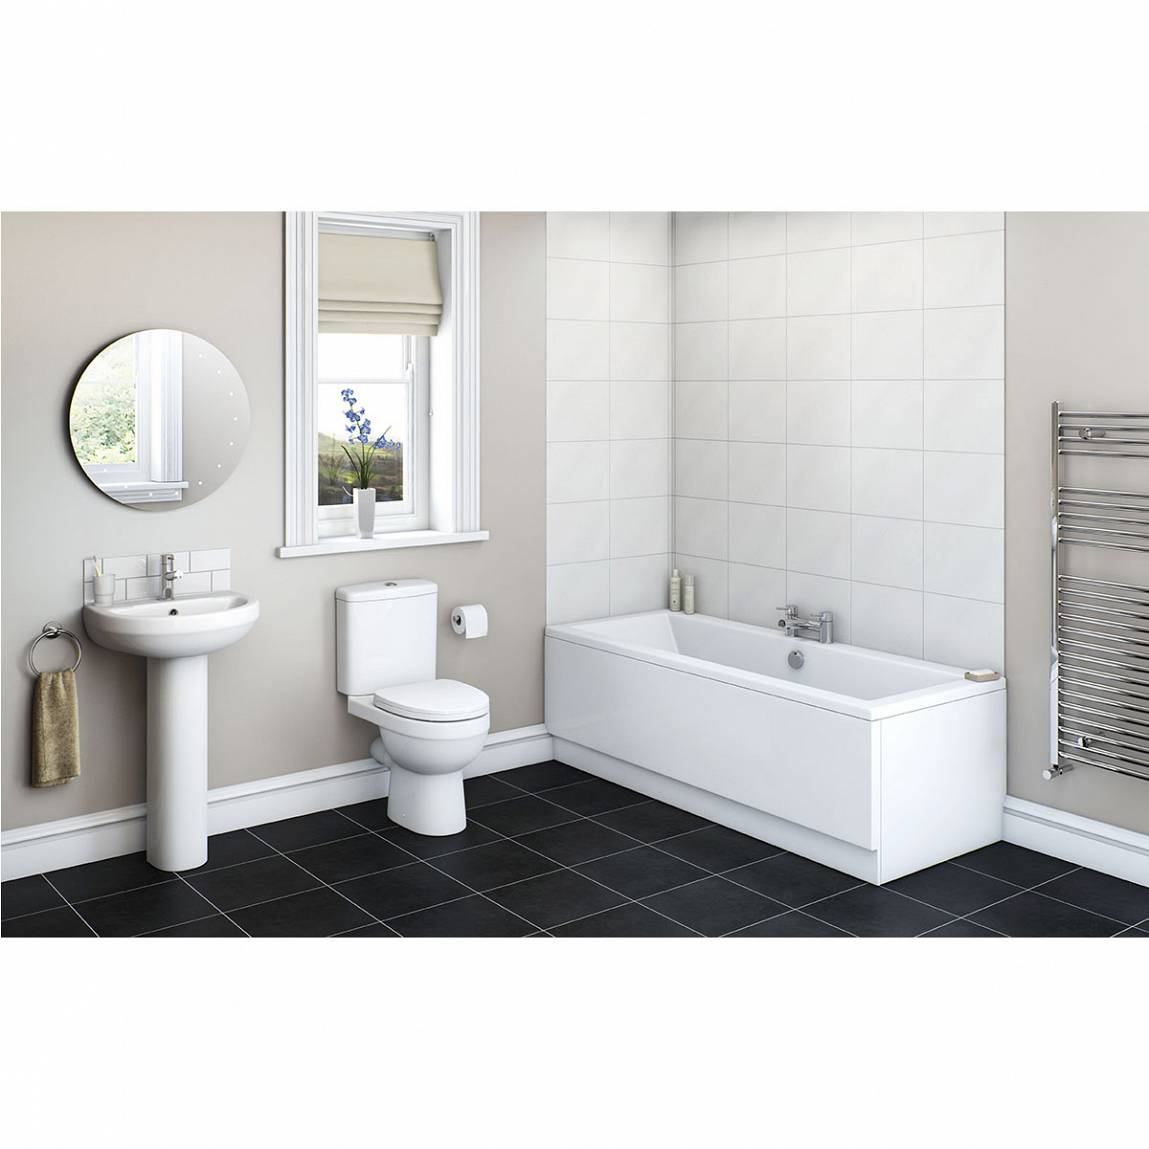 Image of Energy Bathroom Set with Chelsea 1800 x 800 Bath Suite